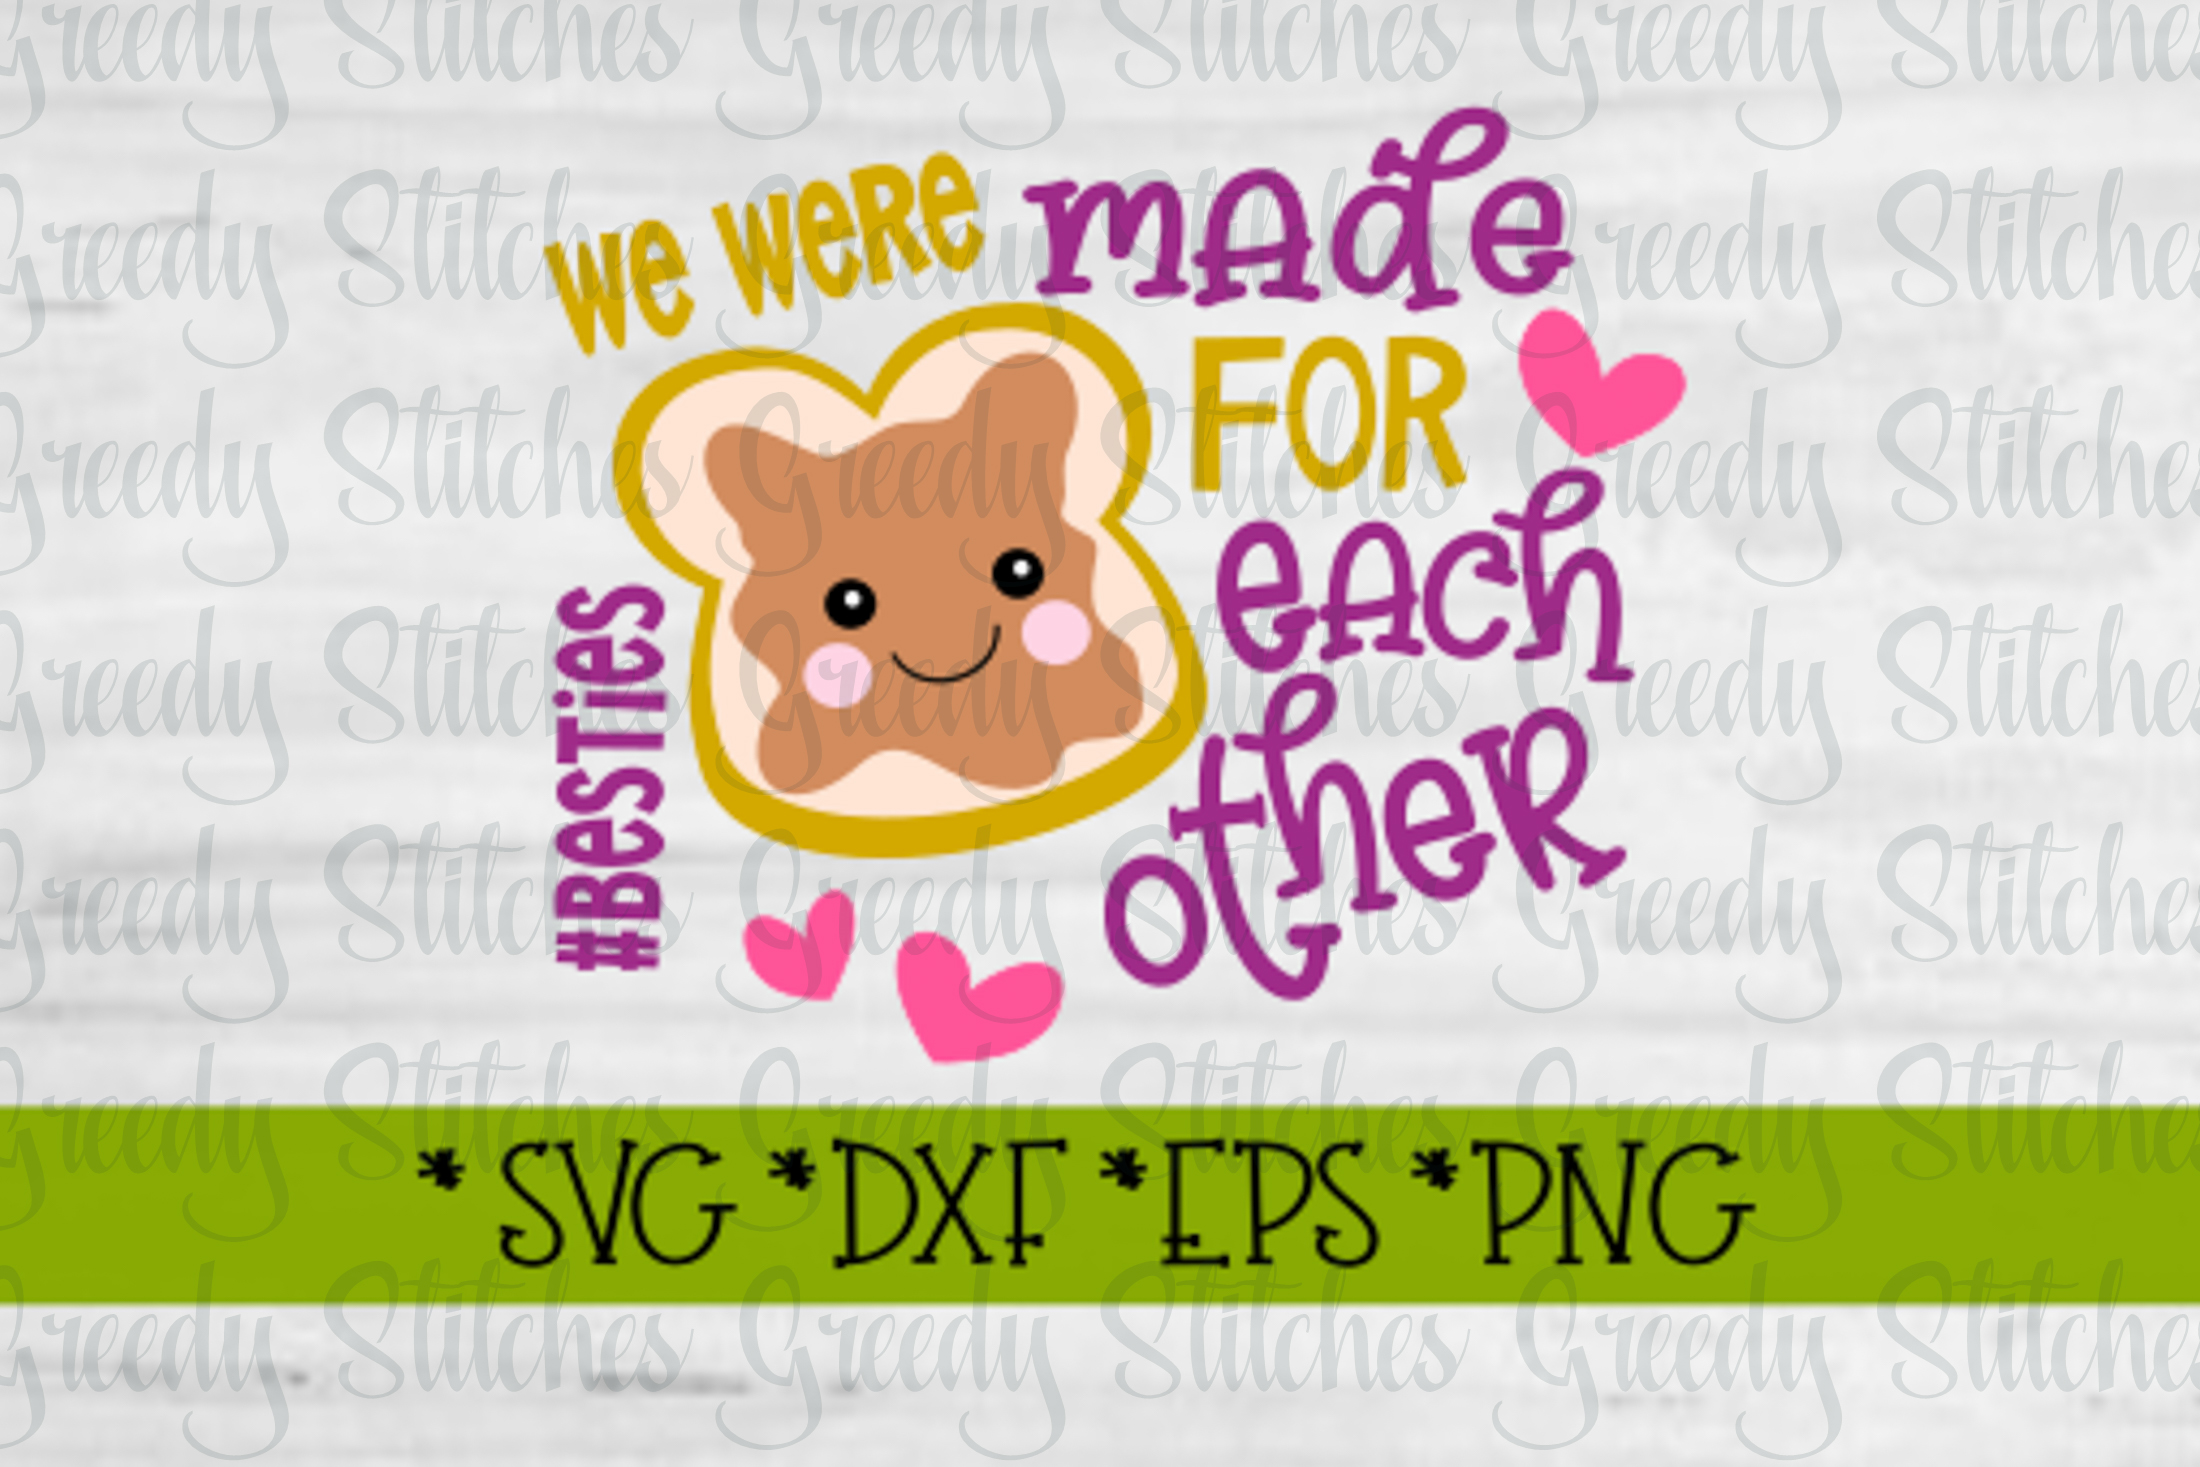 Peanut Butter & Jelly SVG DXF EPS PNG | Best Friends SVG DXF example image 12